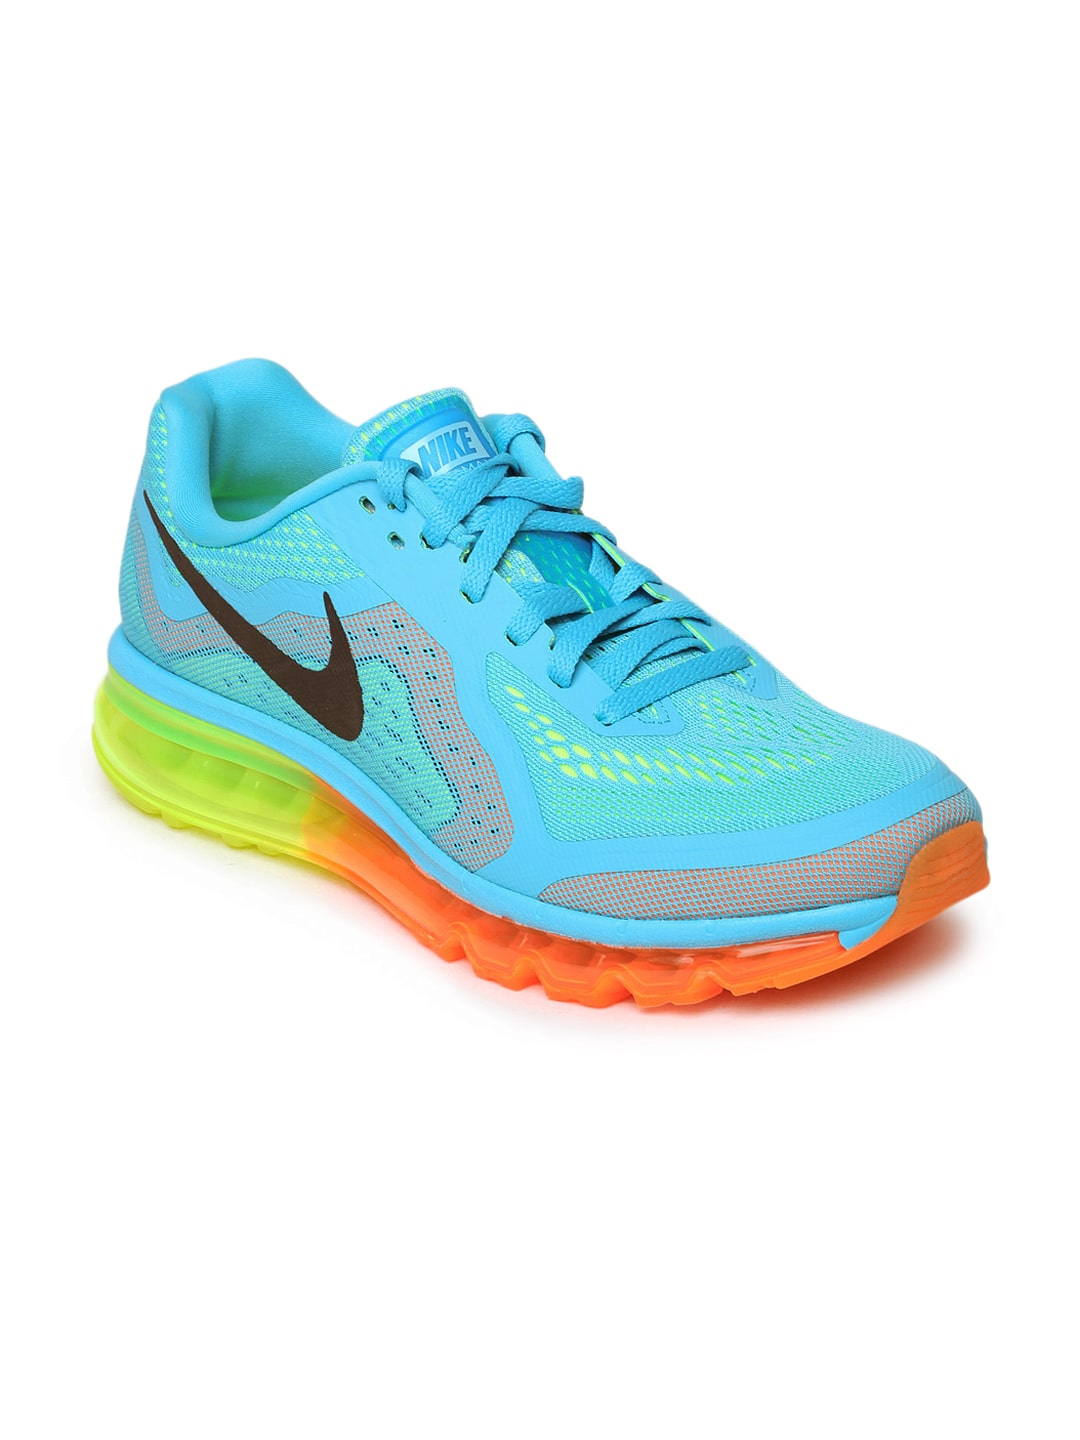 Nike Air Max Shoes Wholesale India